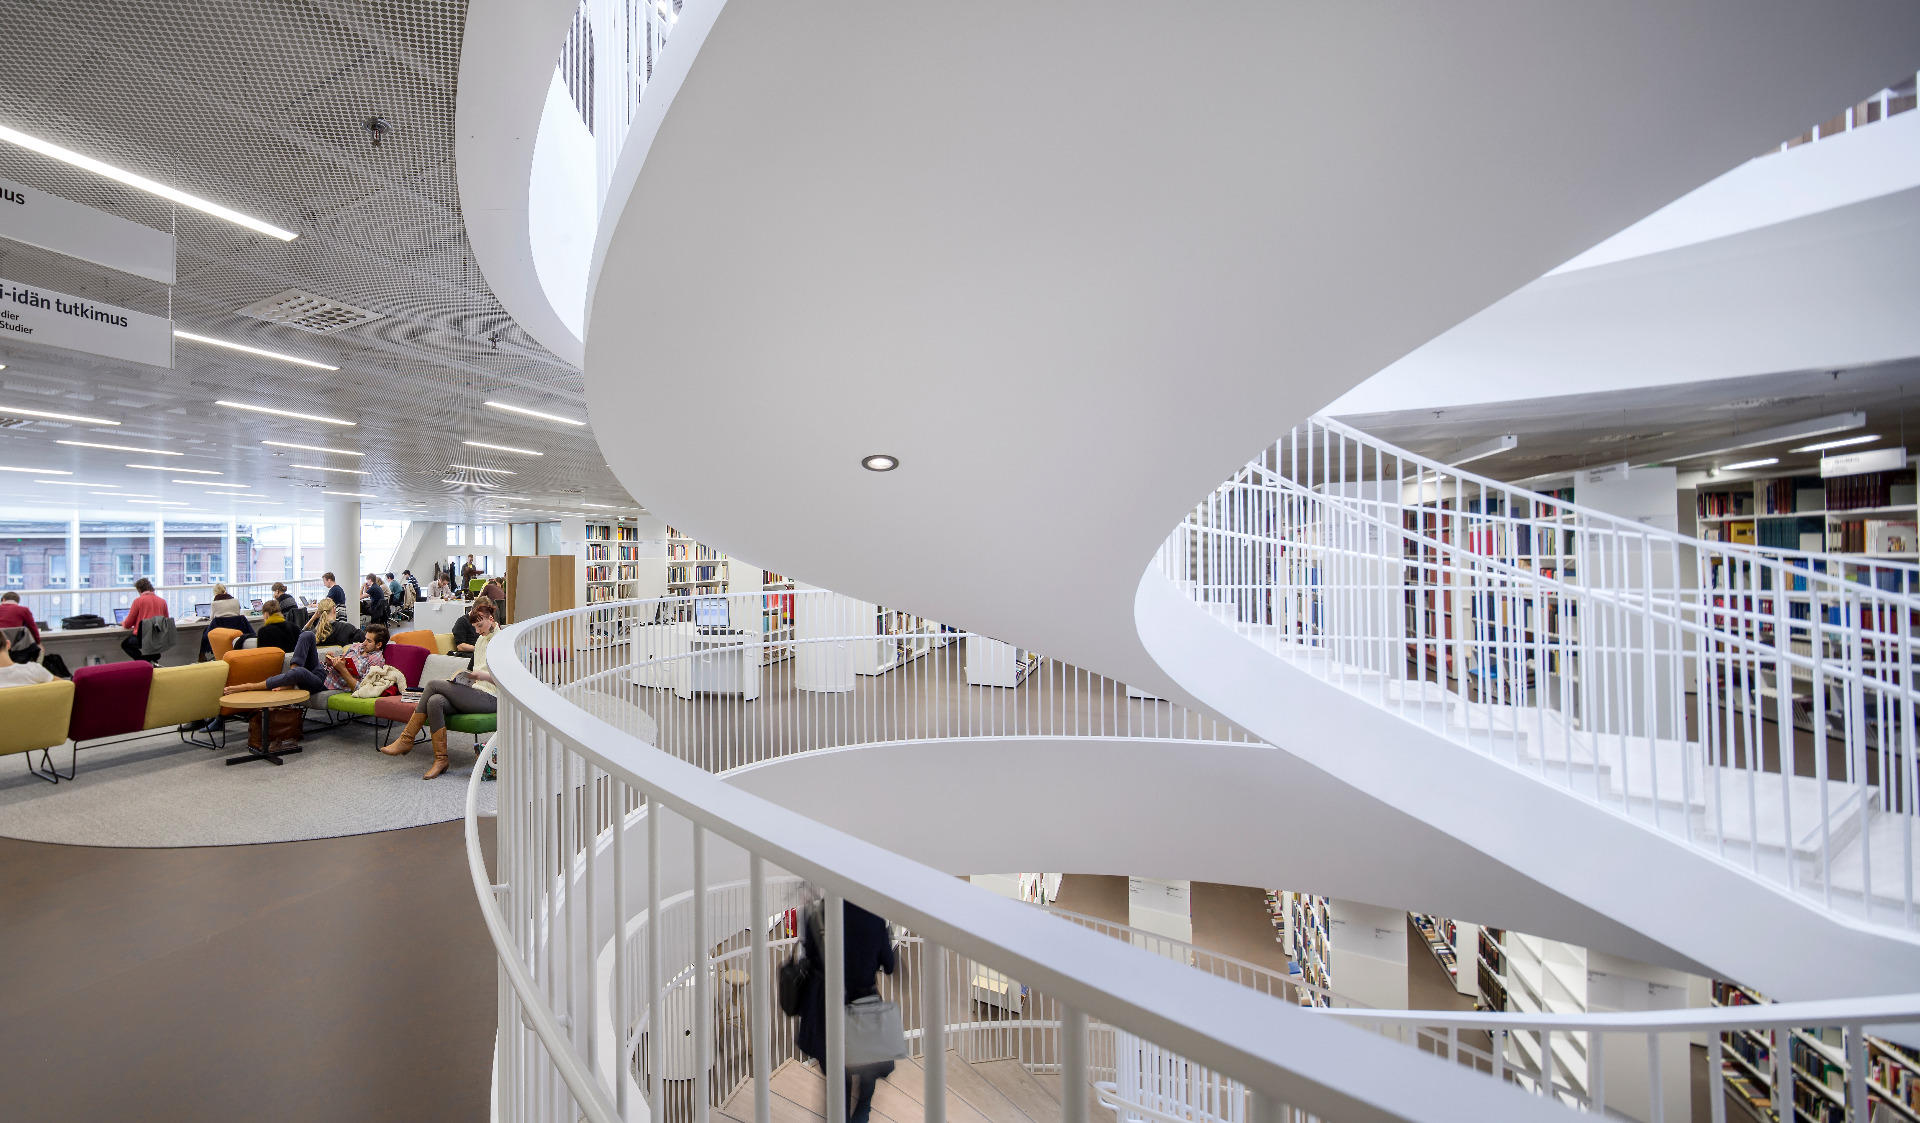 The staircase, books and students at the Kaisa House, the main library of the University of Helsinki.Photo by Mika Huisman.